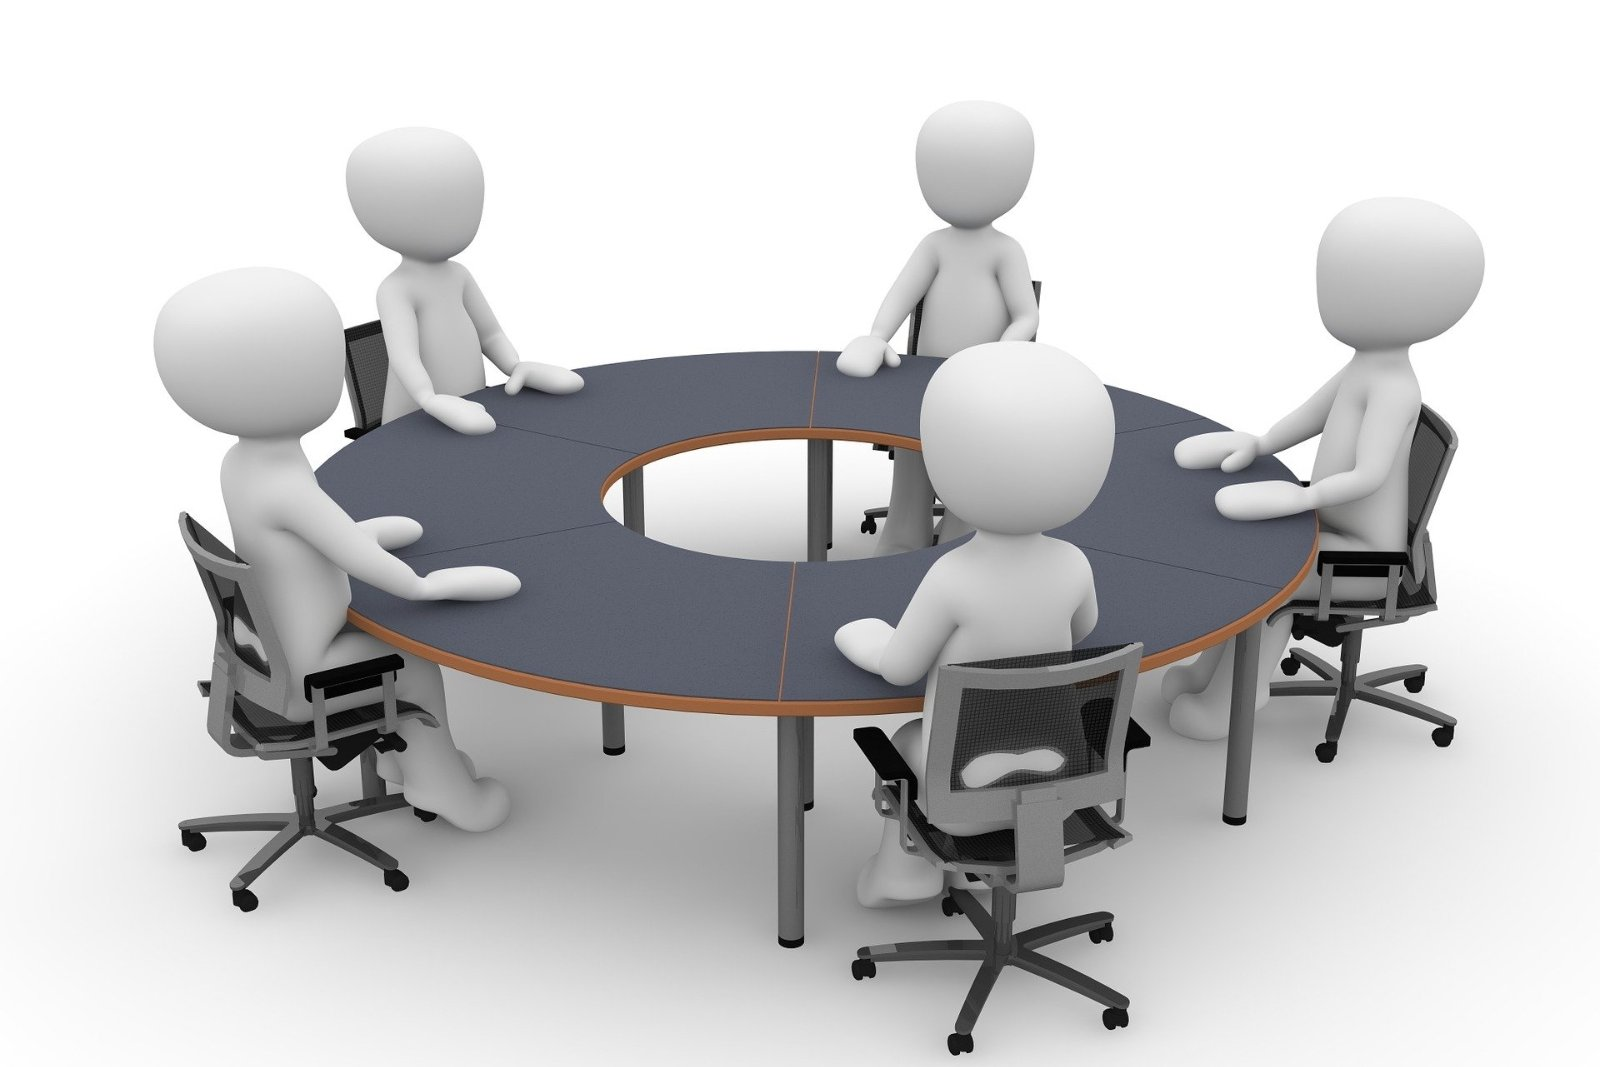 meeting-1015591_1920 (c) pixabay